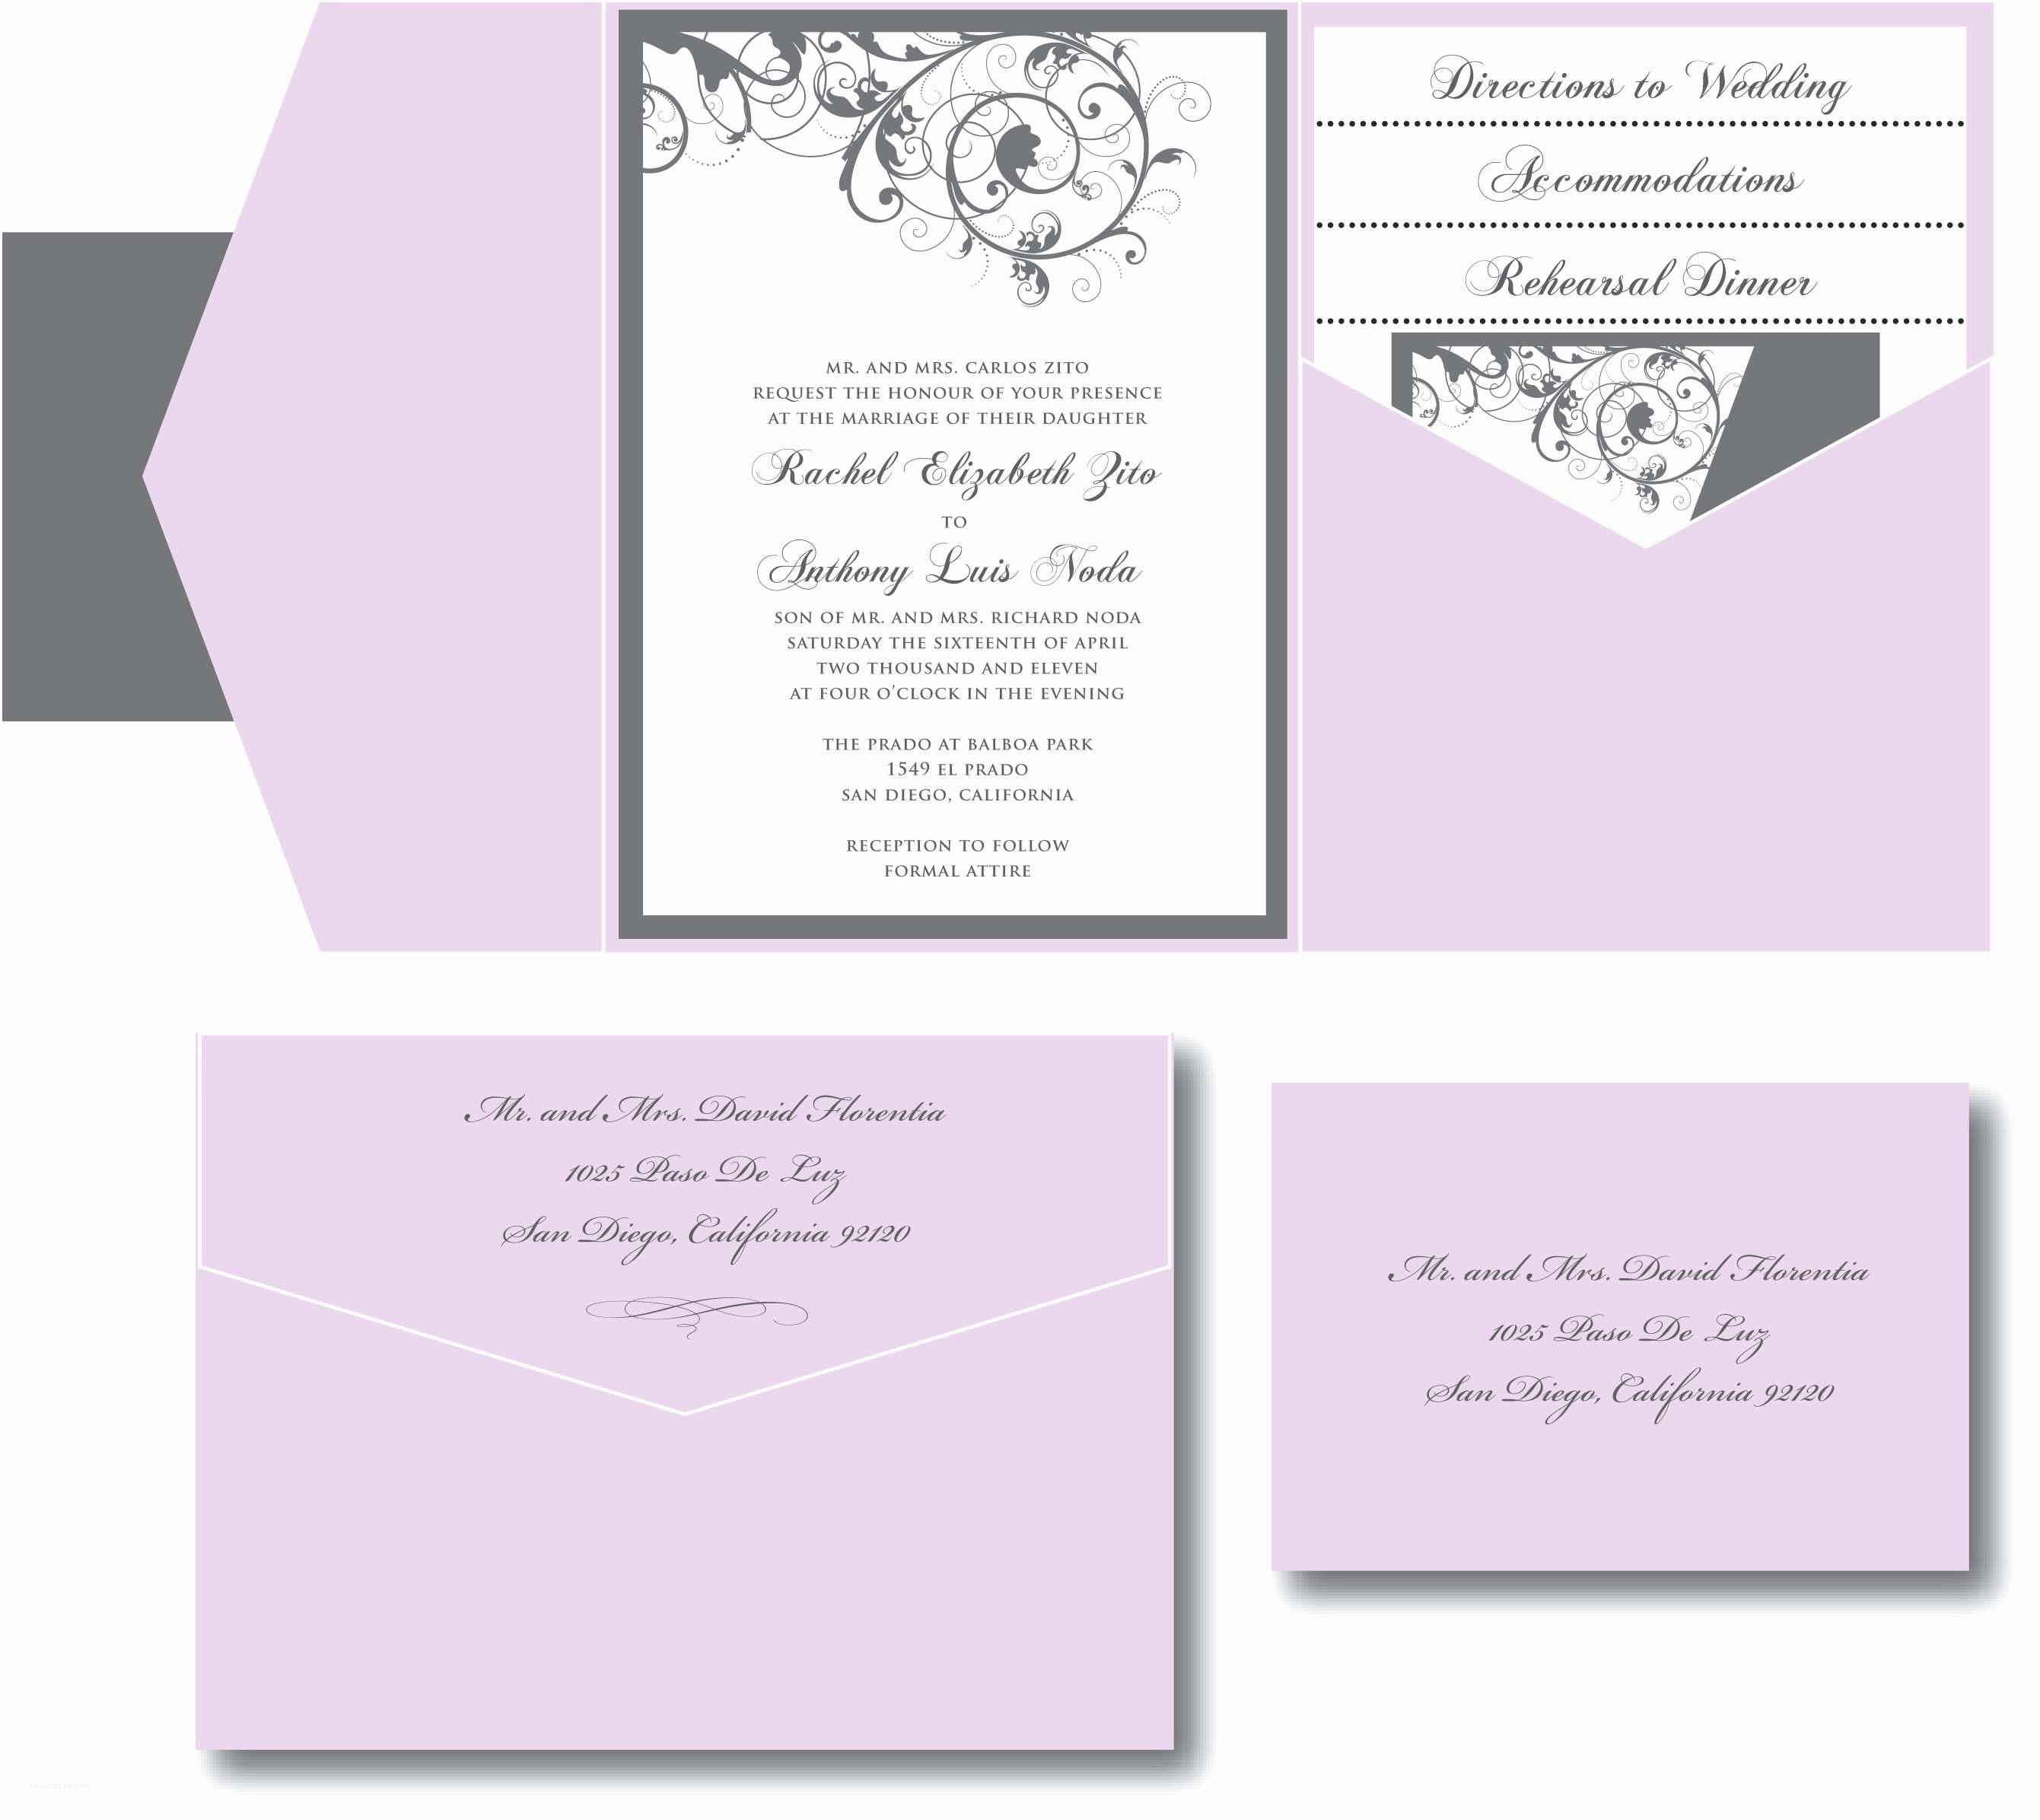 Lilac and Silver Wedding Invitations Purple and Silver Wedding Invitation – A Vibrant Wedding